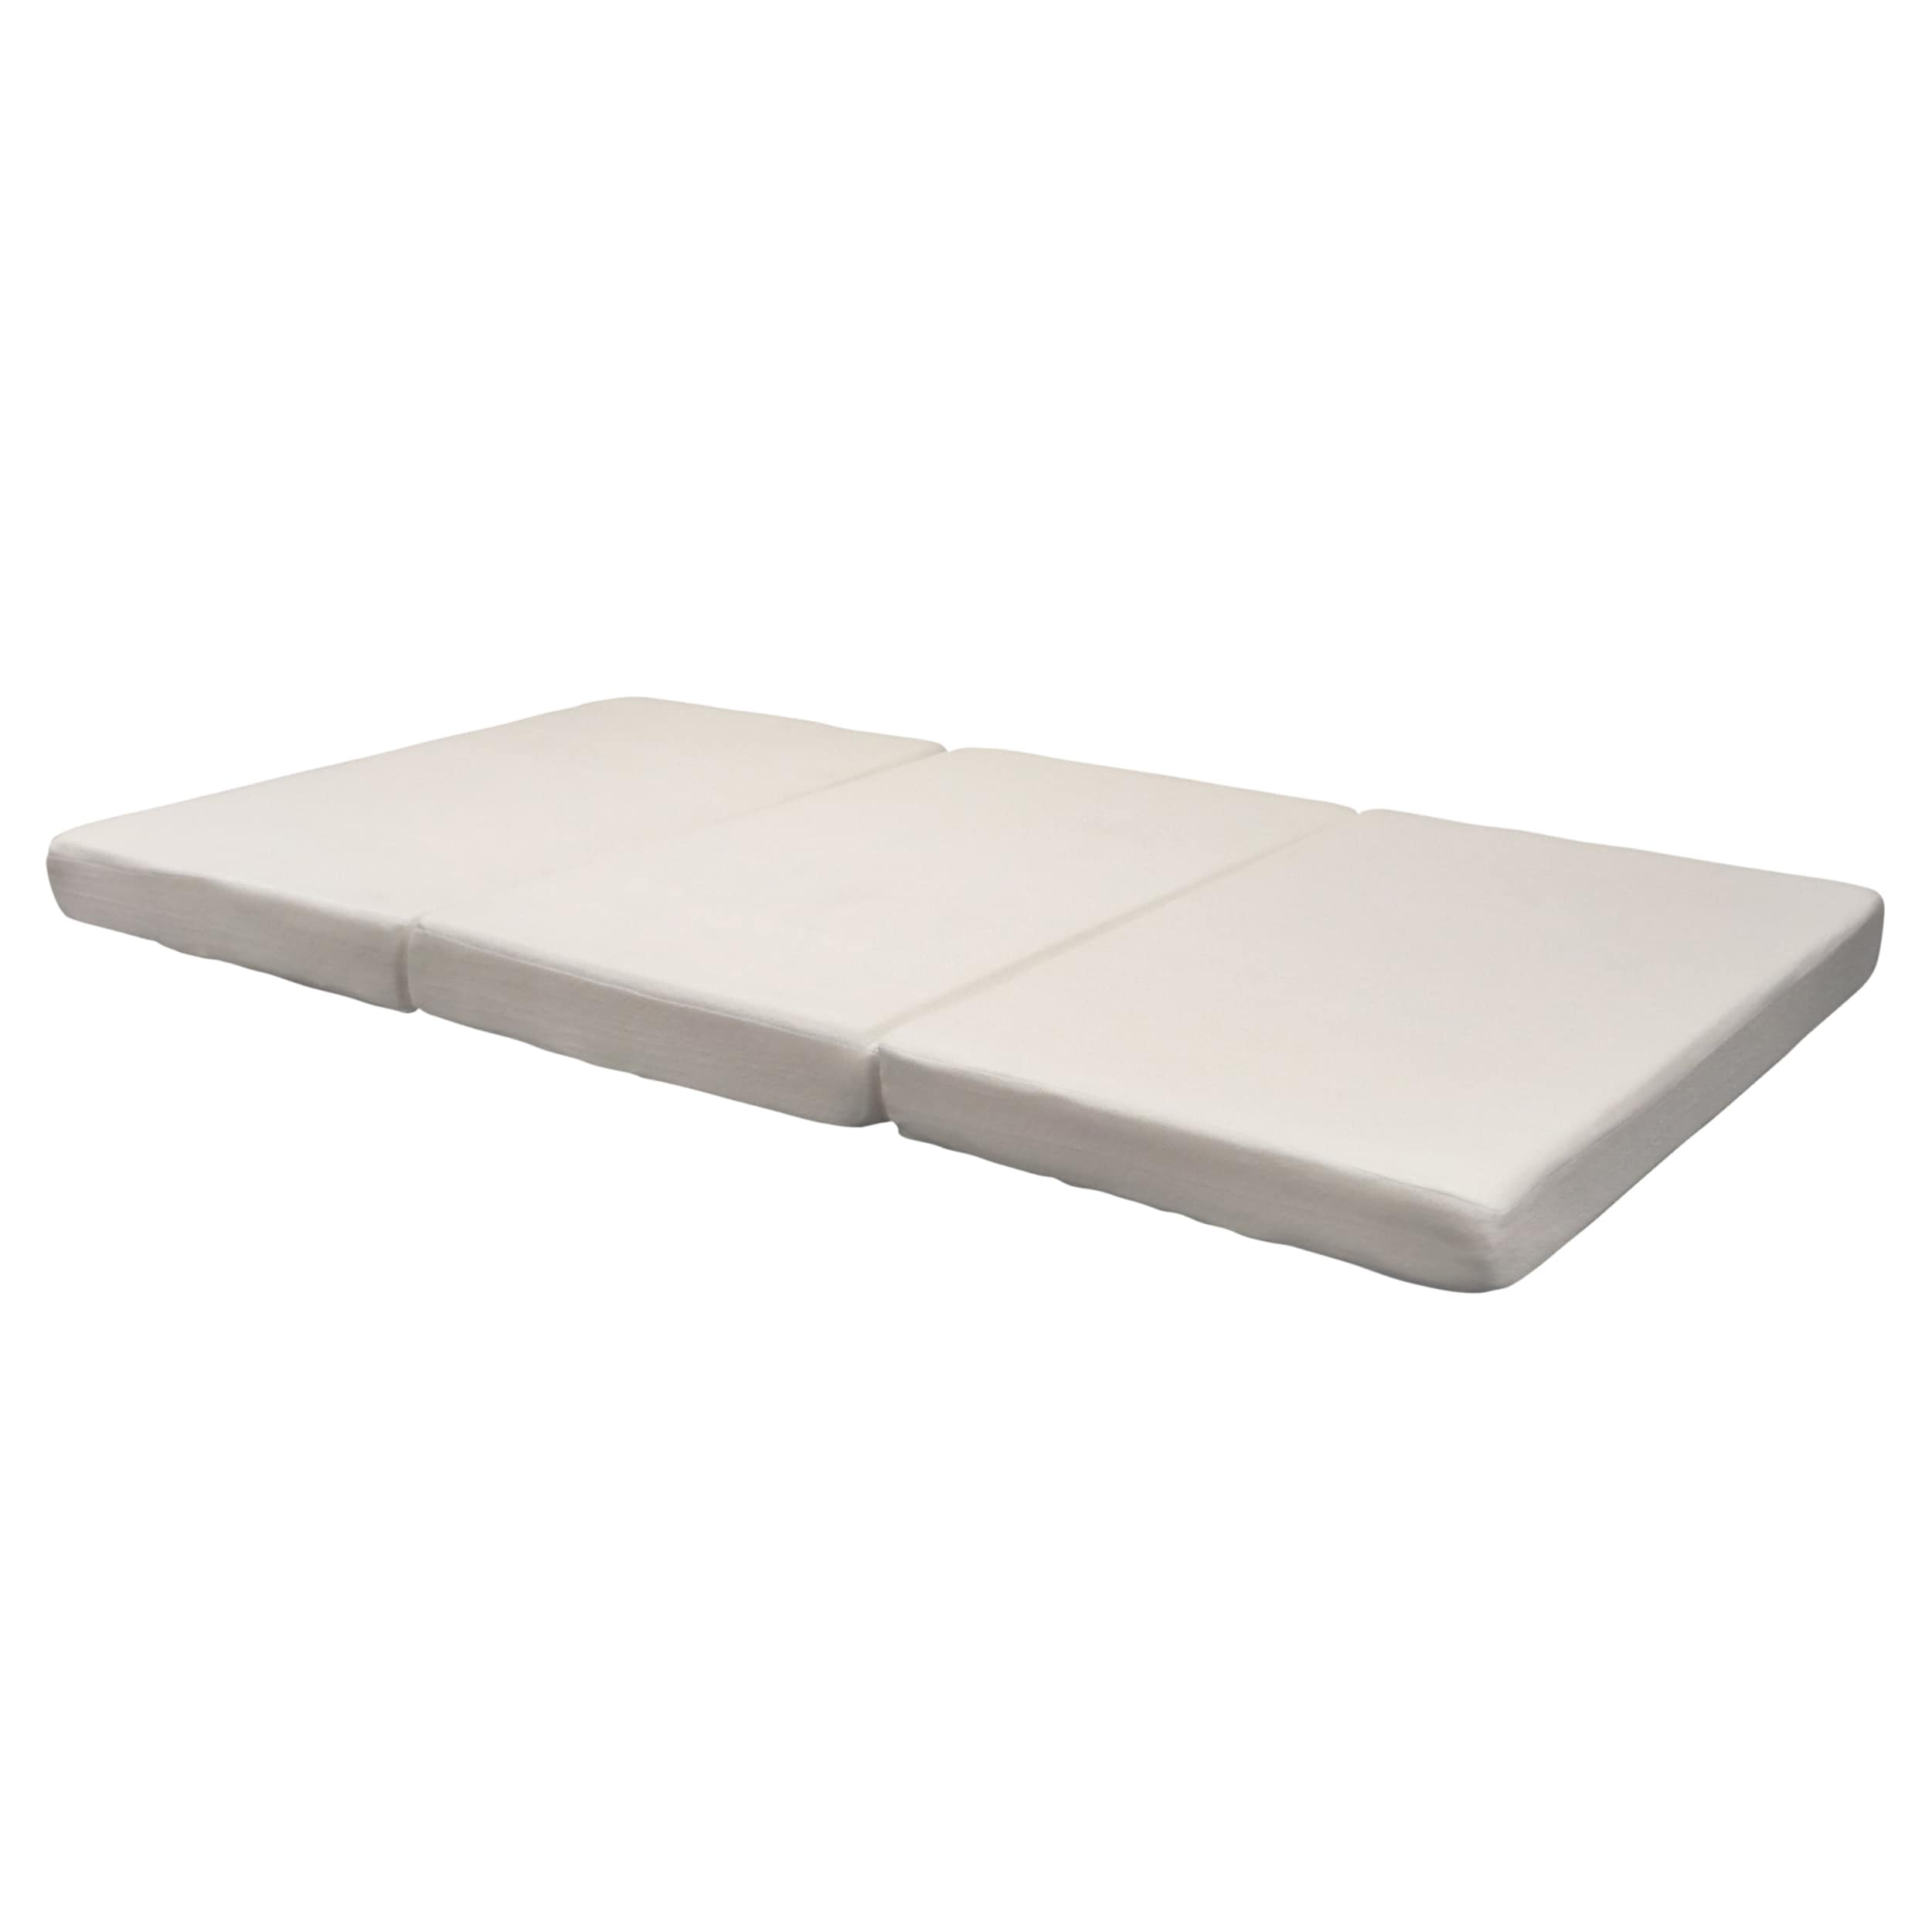 inch mattress fold shipping tri foam product folding gel lucid mats memory sofa garden home mat overstock free today